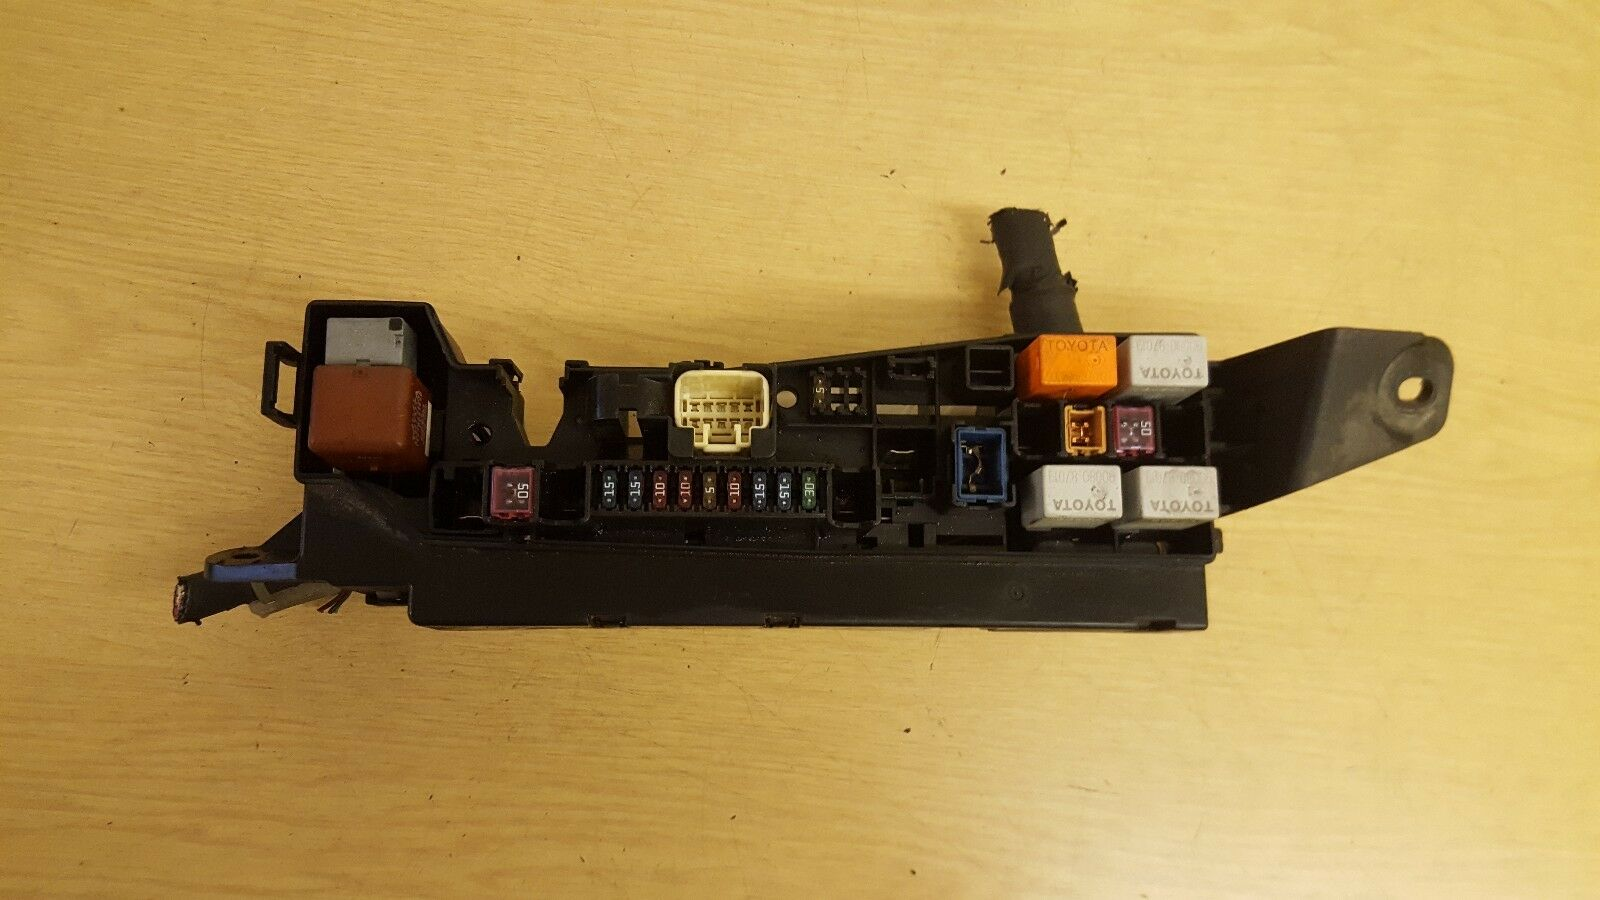 Toyota Corolla 14 Vvt I Fuse Box 2999 Picclick Uk 1 Of 1only Available